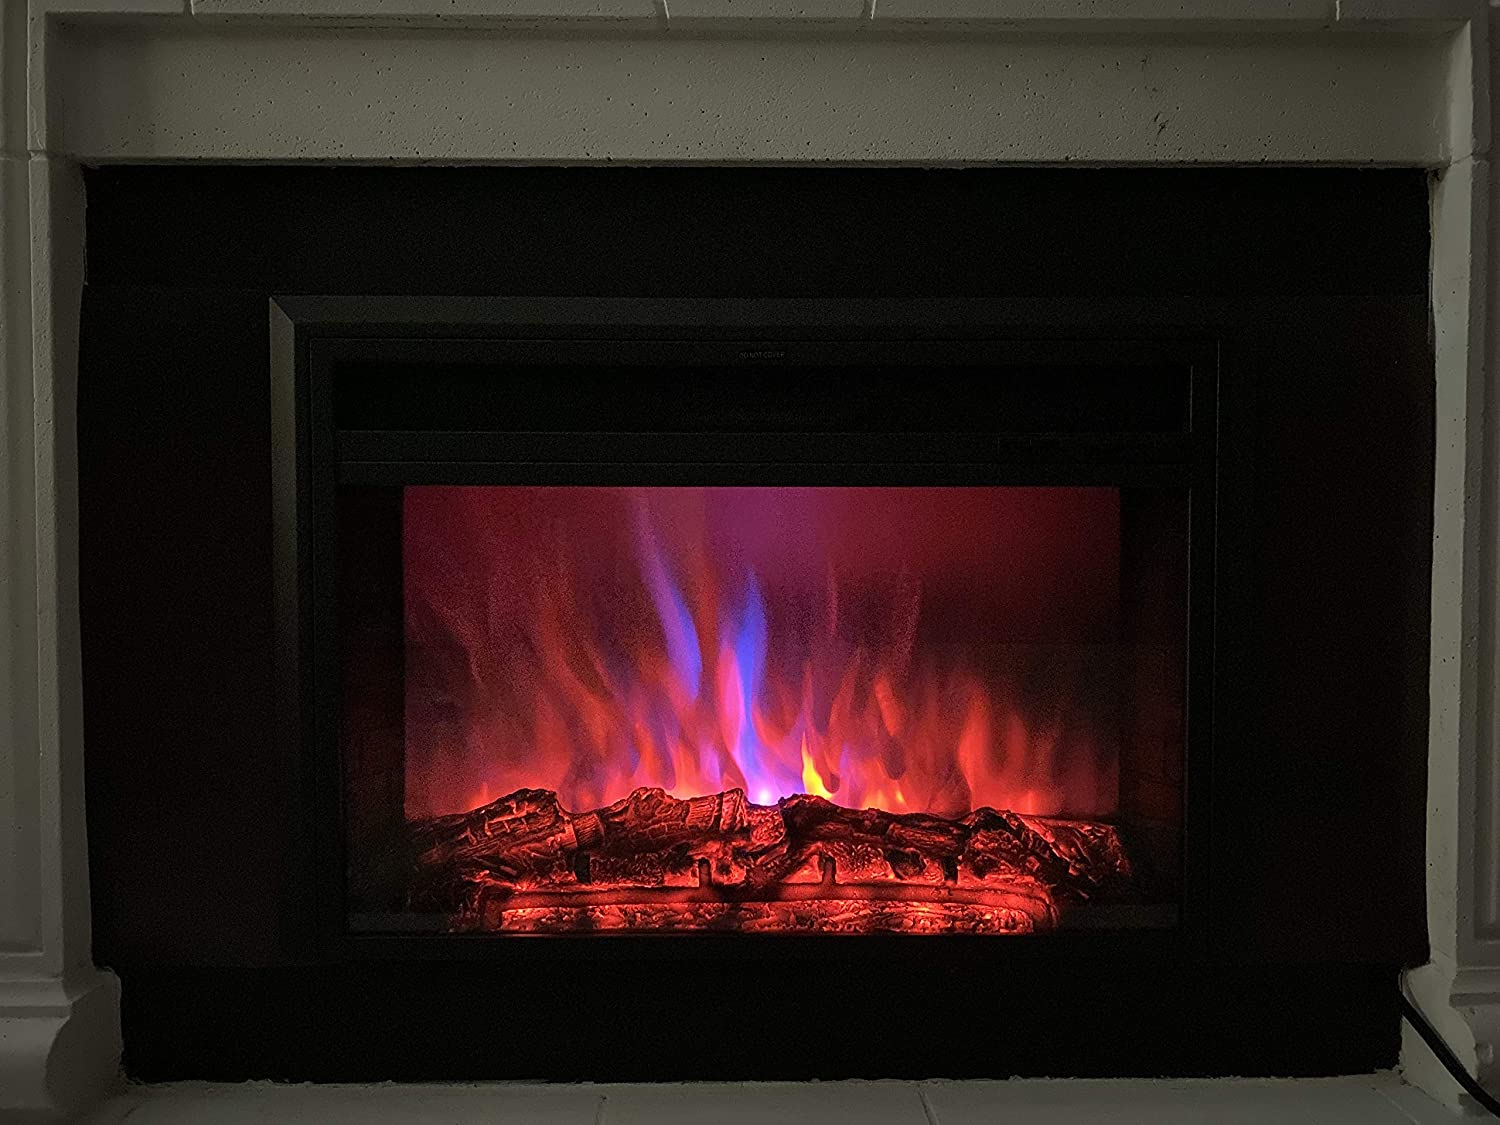 XBrand Insert Fireplace Heater w/Remote Control and LED Flame Effect, 25 Inch Long, Black